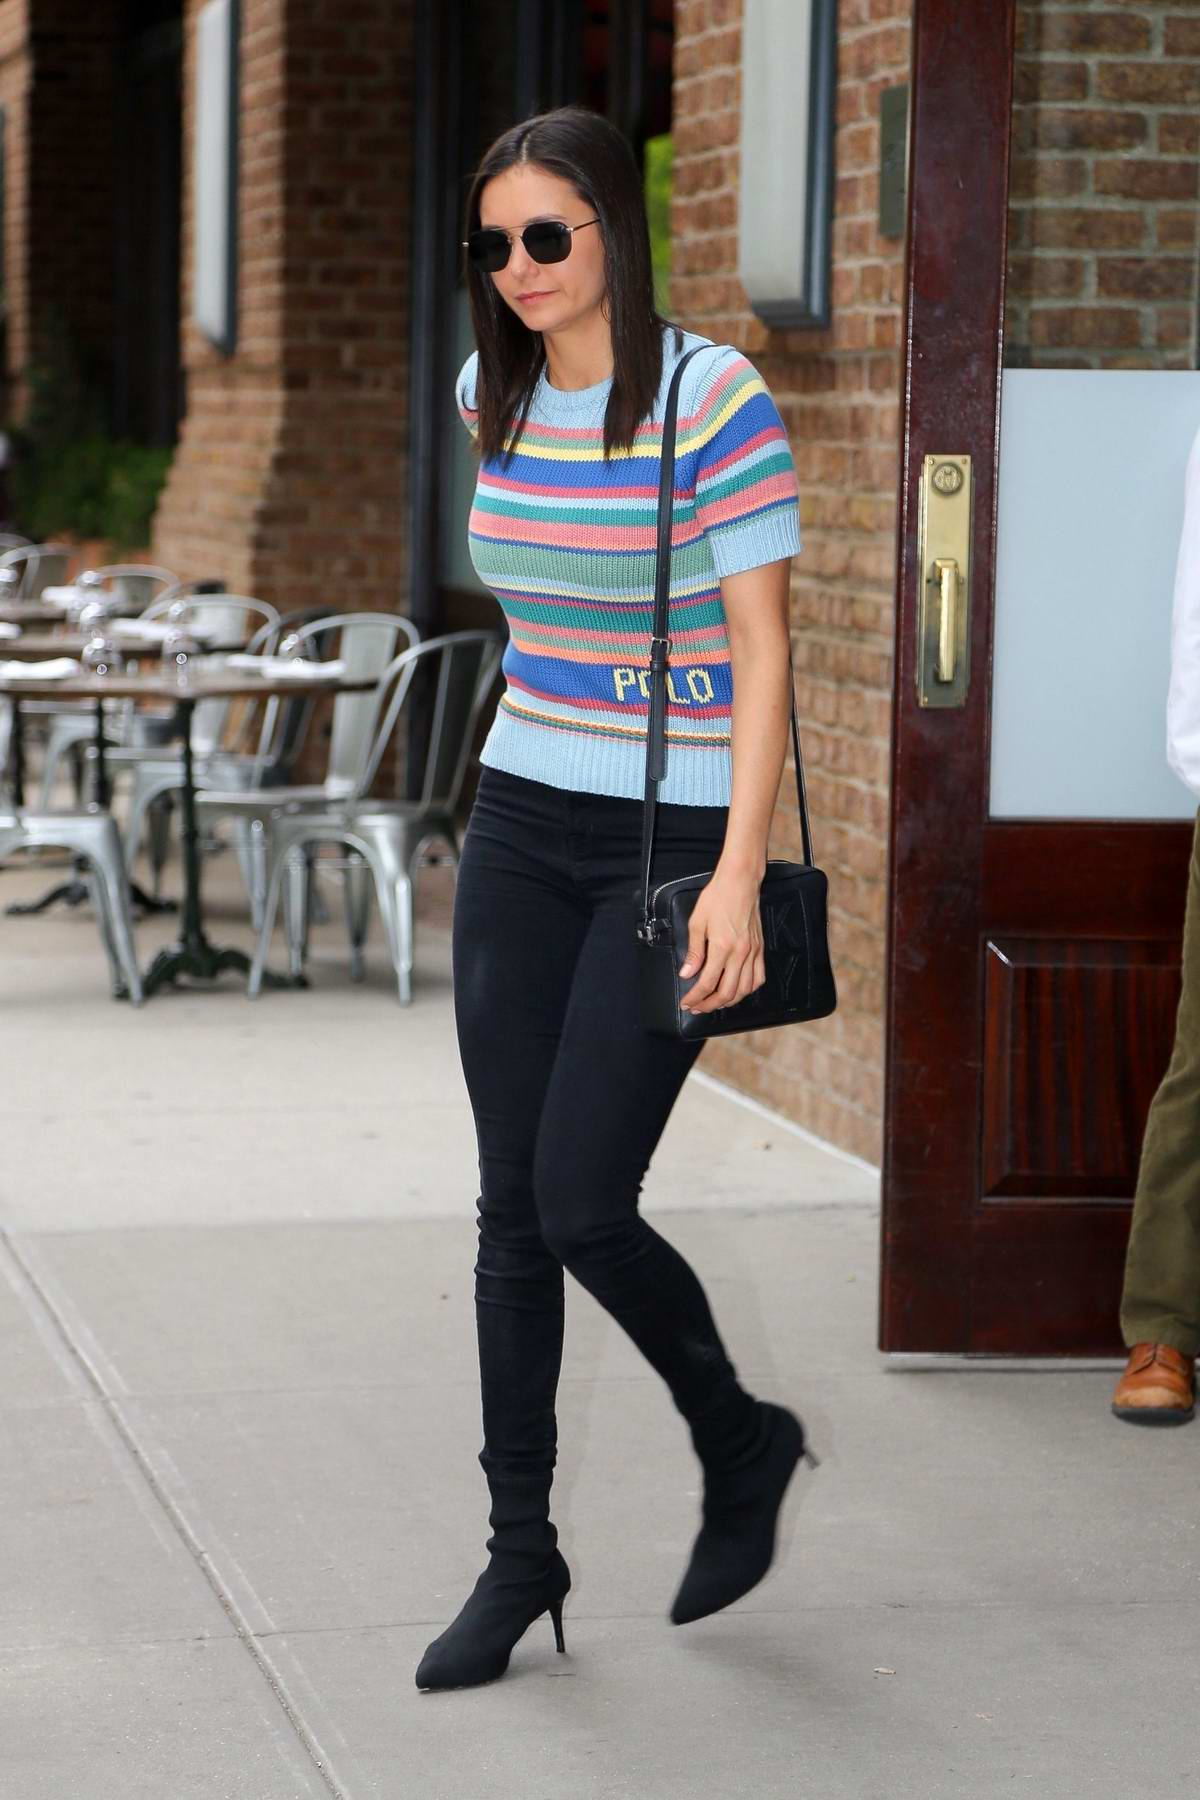 Nina Dobrev looks stylish in a striped top, black jeans and high heels as she leaves the Greenwich Hotel in New York City